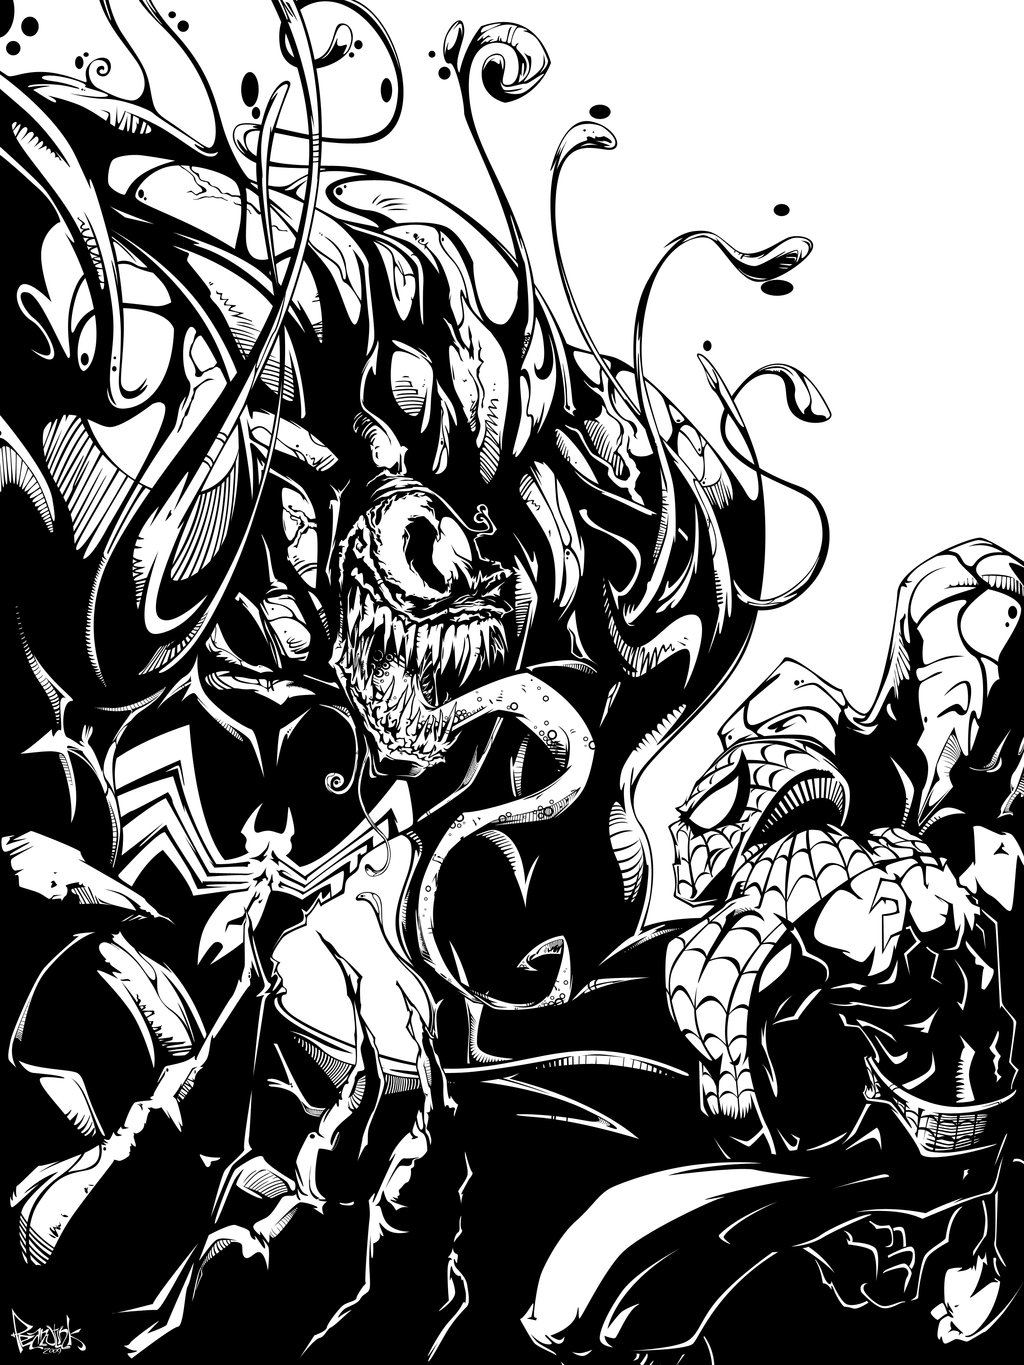 1024x1365 Venom Vs Spiderman Digi Ink By Pnutink On DeviantArt